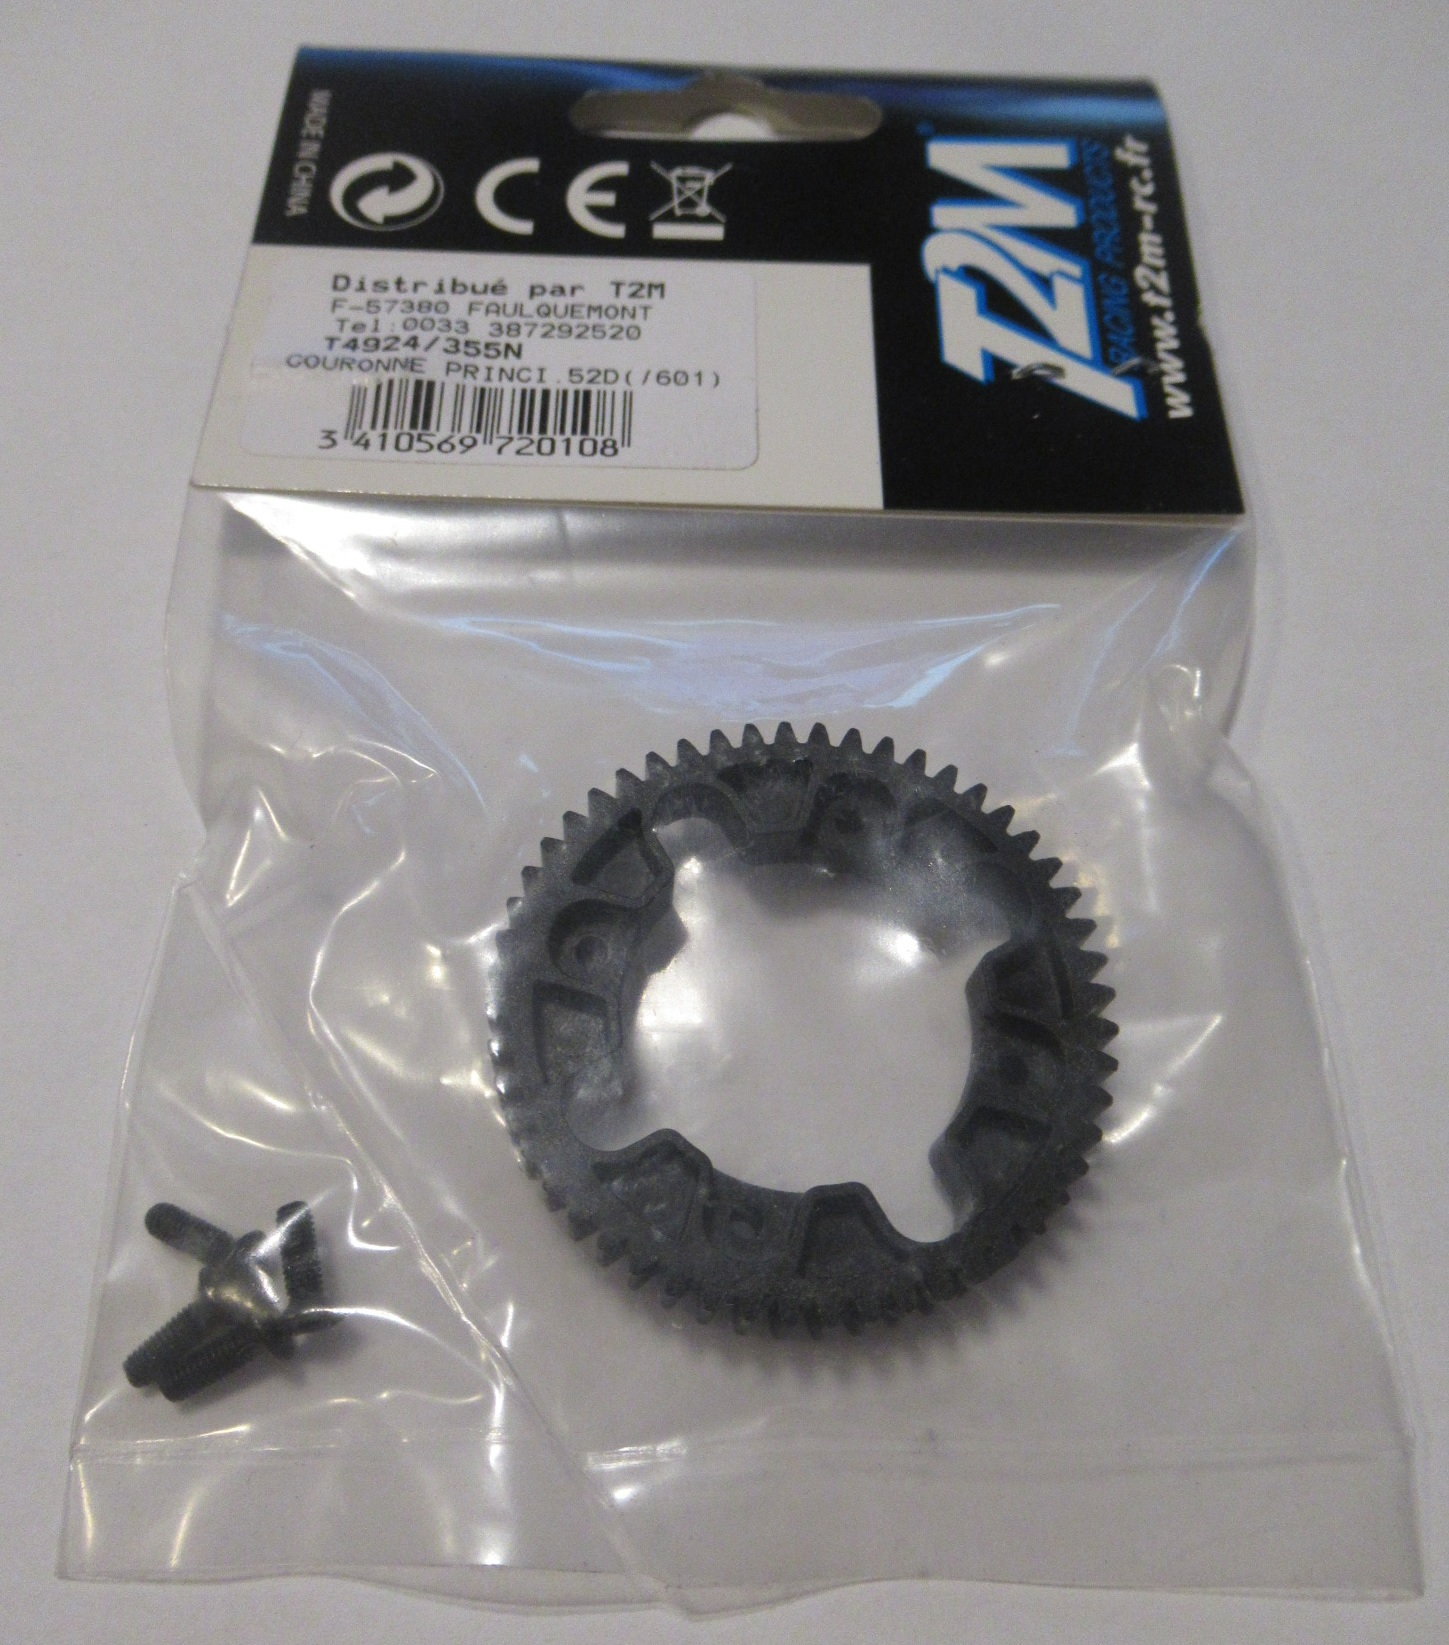 T2M T4924/355N Spur Gear 52T for T2M Pirate Furious XL